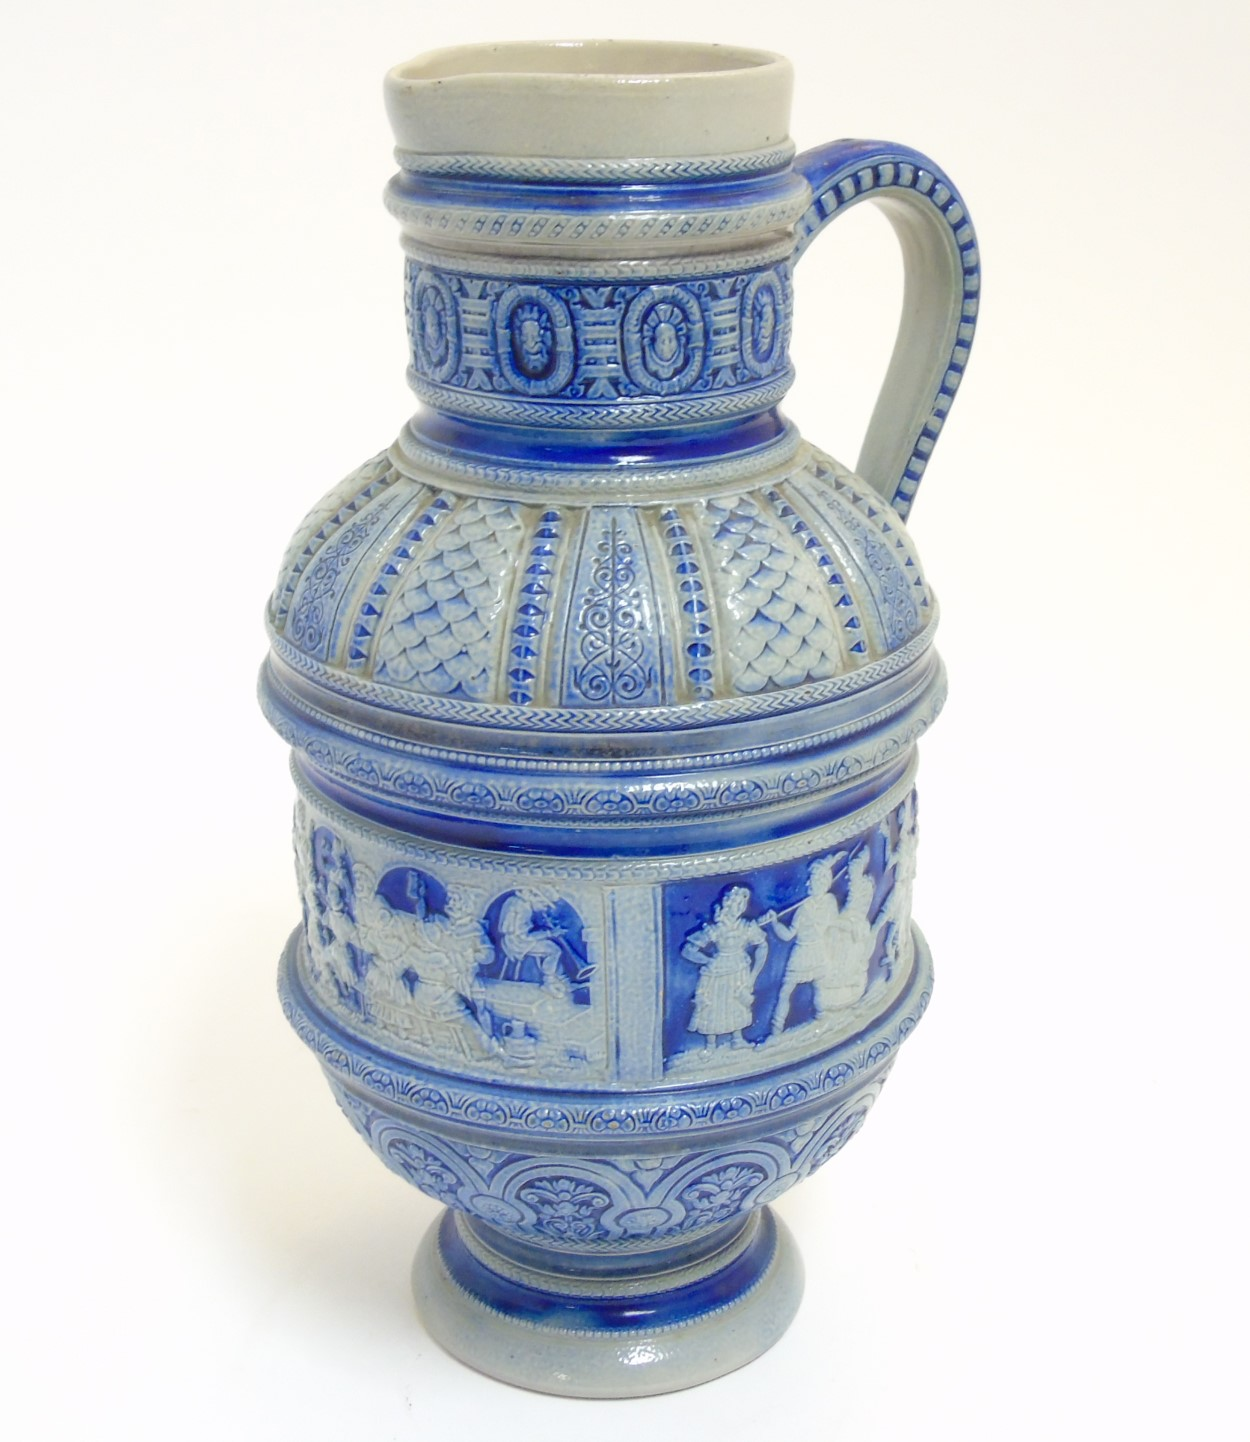 Lot 65 - A German Westerwald style salt glazed ewer jug with molded relief of folklore scenes and other